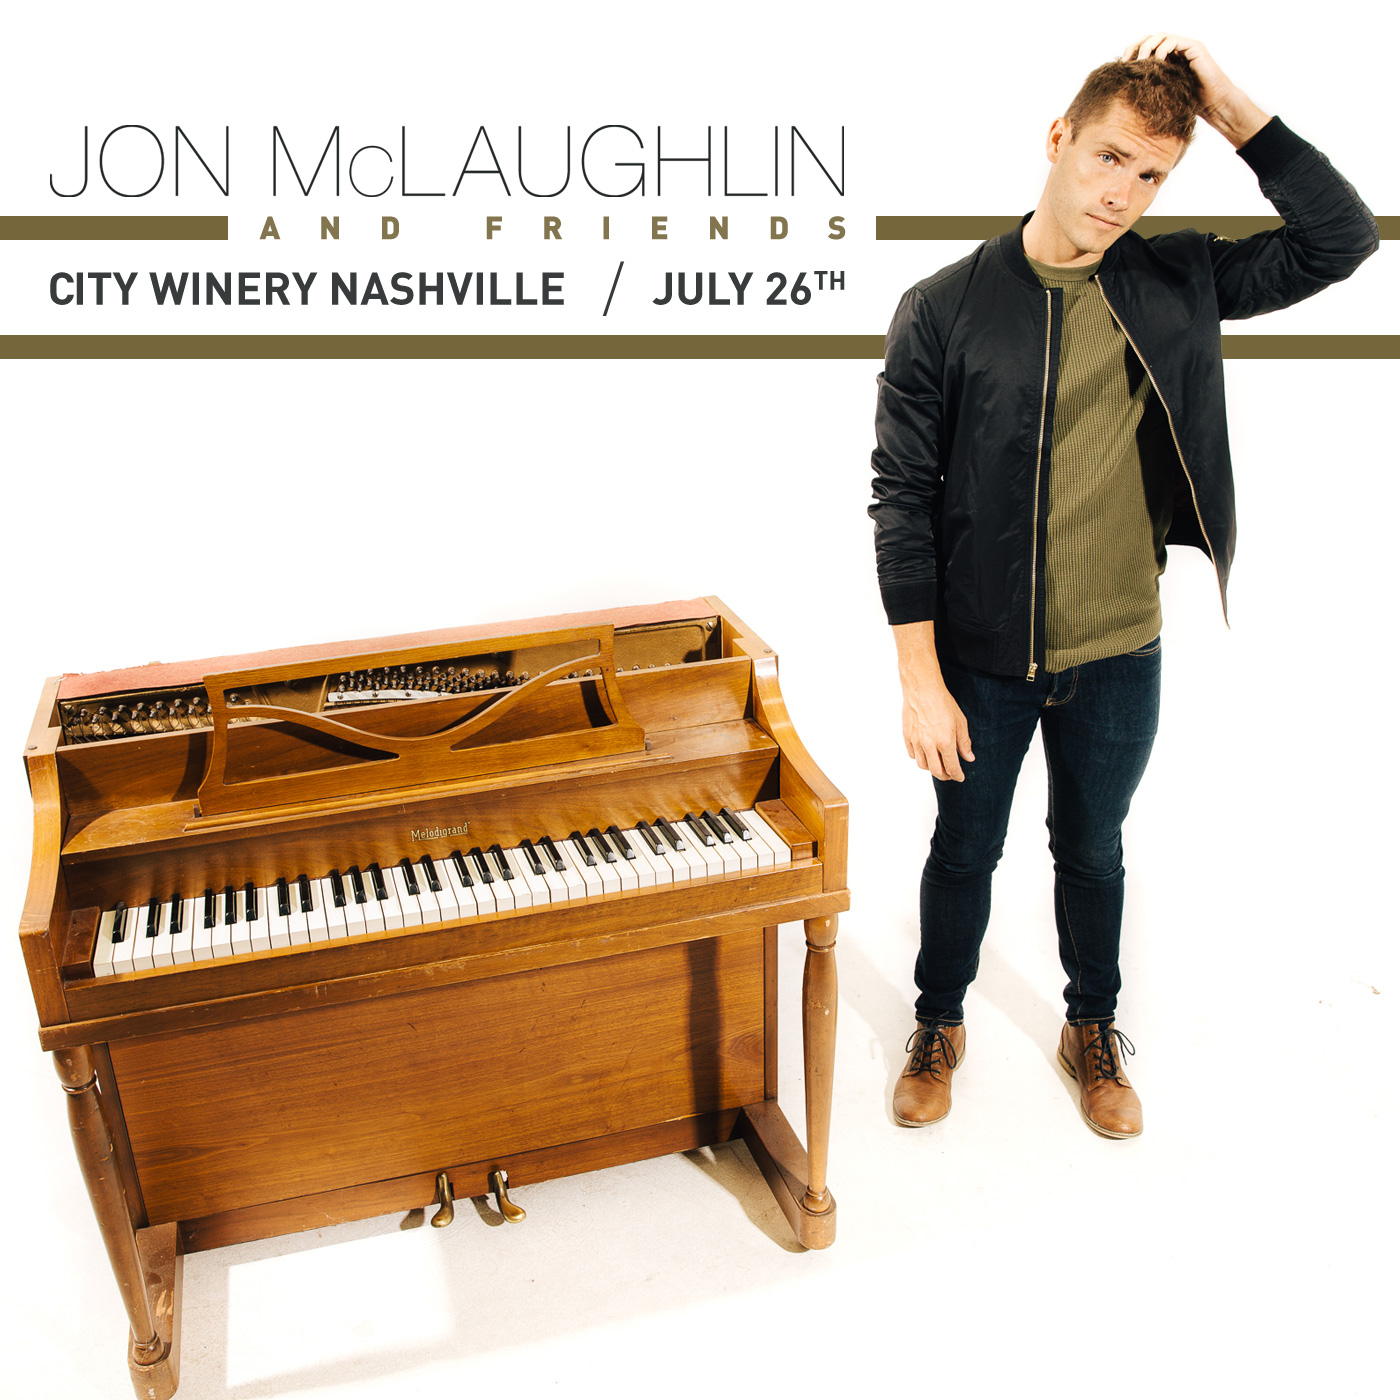 JonMcLaughlin_CityWinery On Sale.jpg